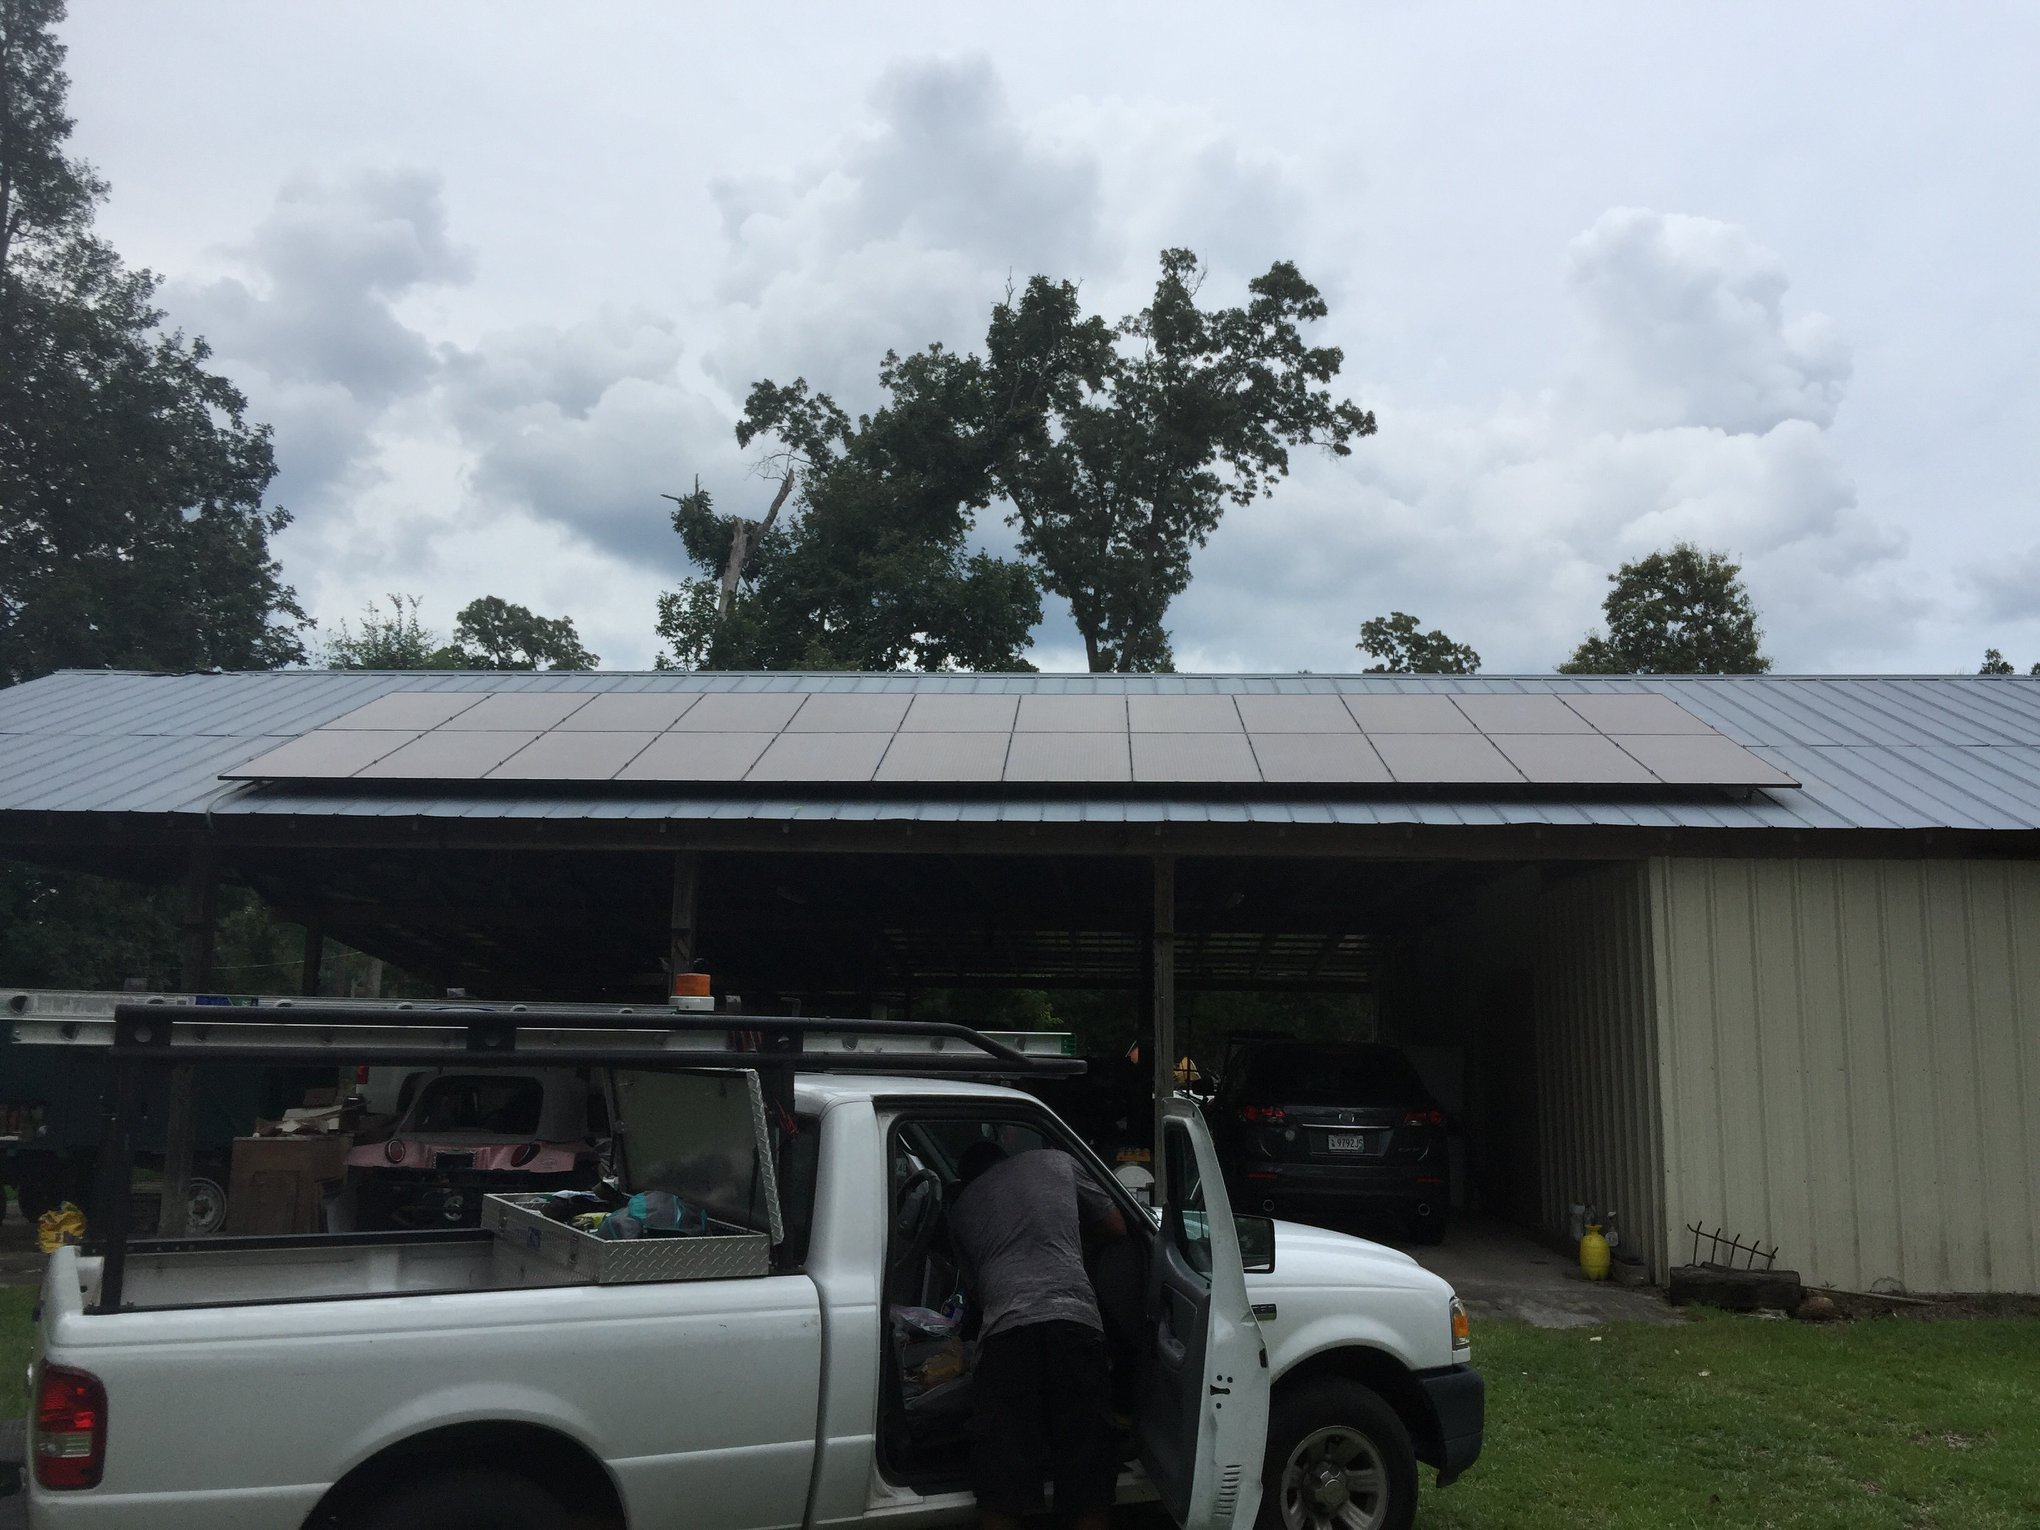 Commercial Solar Panels in Texas